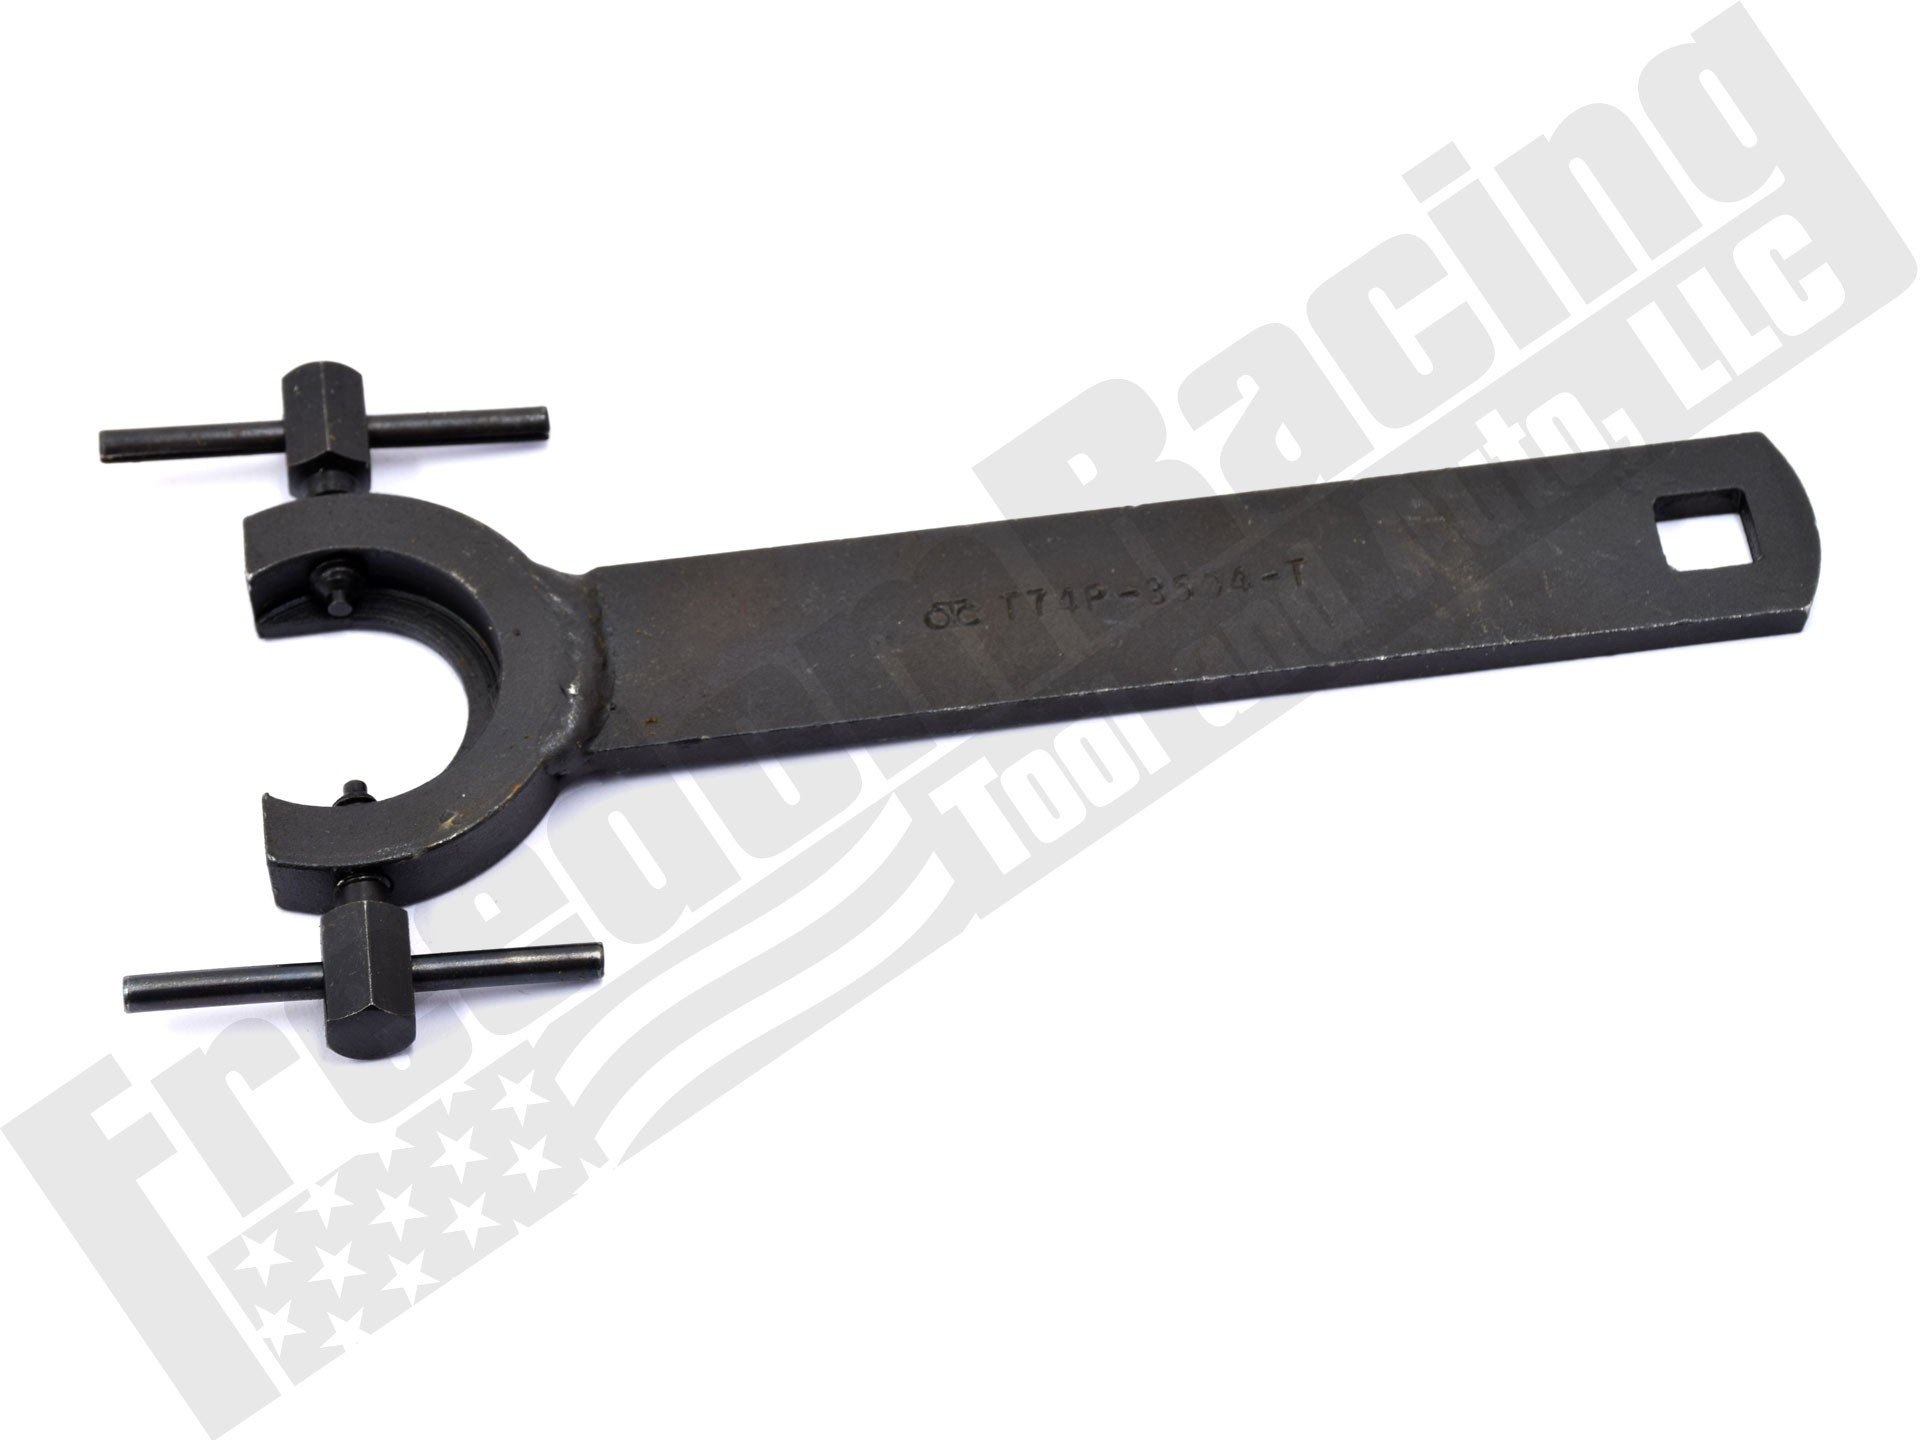 Spanner Wrench T74P-3504-T